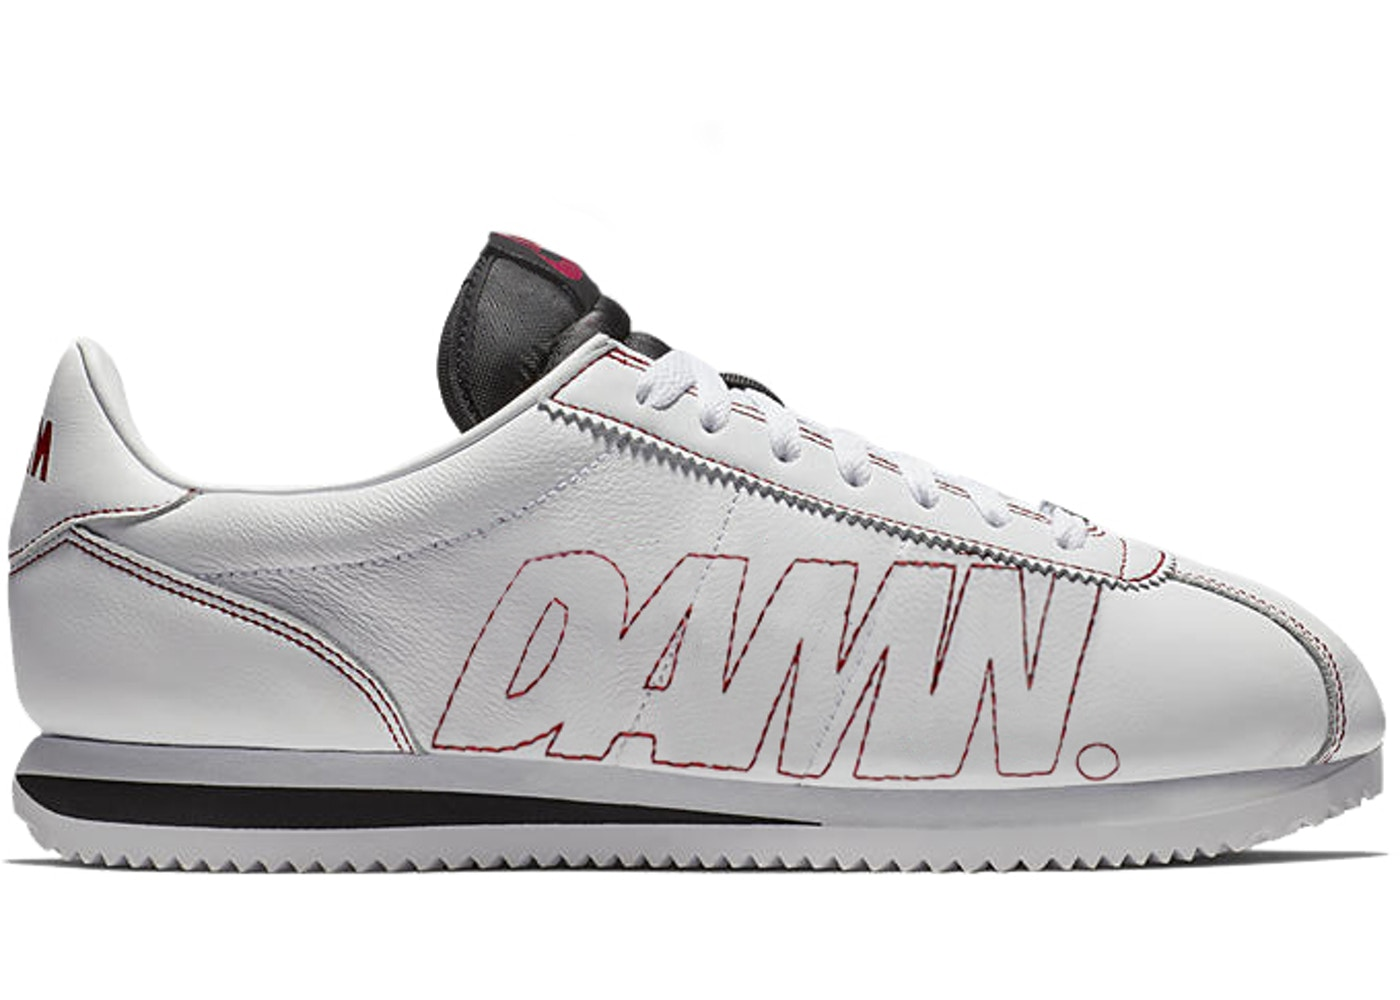 uk availability 150cf b4365 Nike Cortez Kenny 1 Kendrick Lamar Damn White Gym Red - AV8255-106